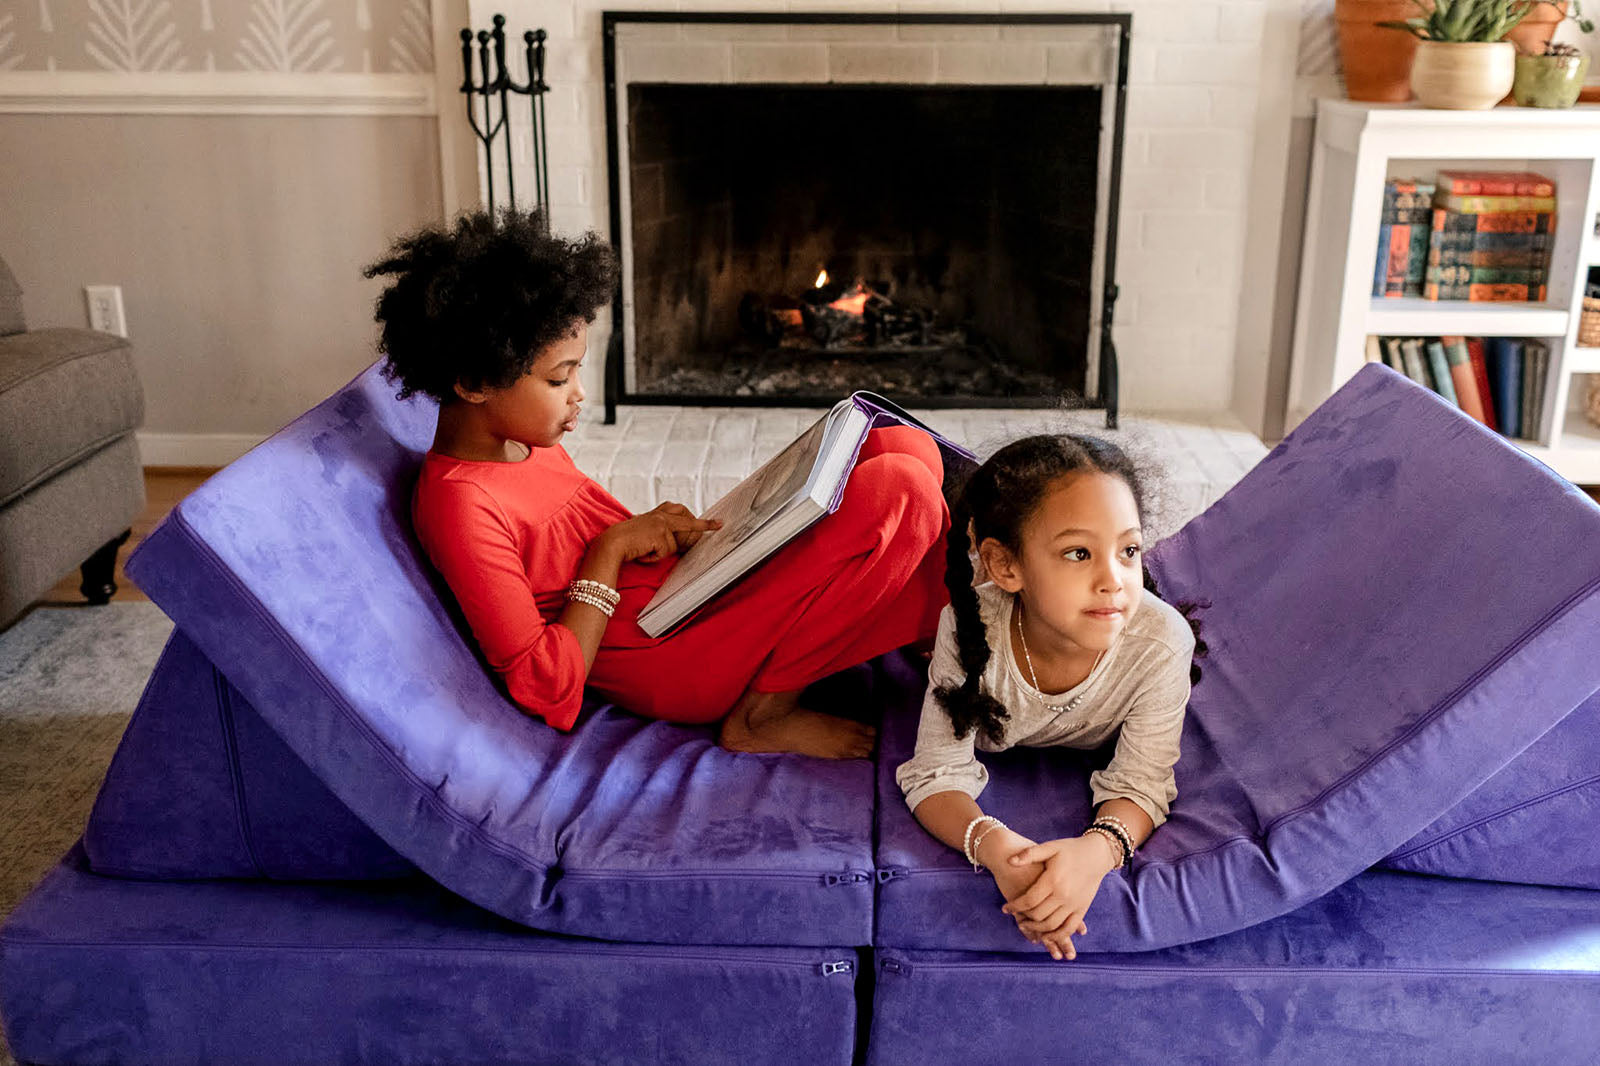 Two children lounging on Potion Nugget couch in front of fireplace